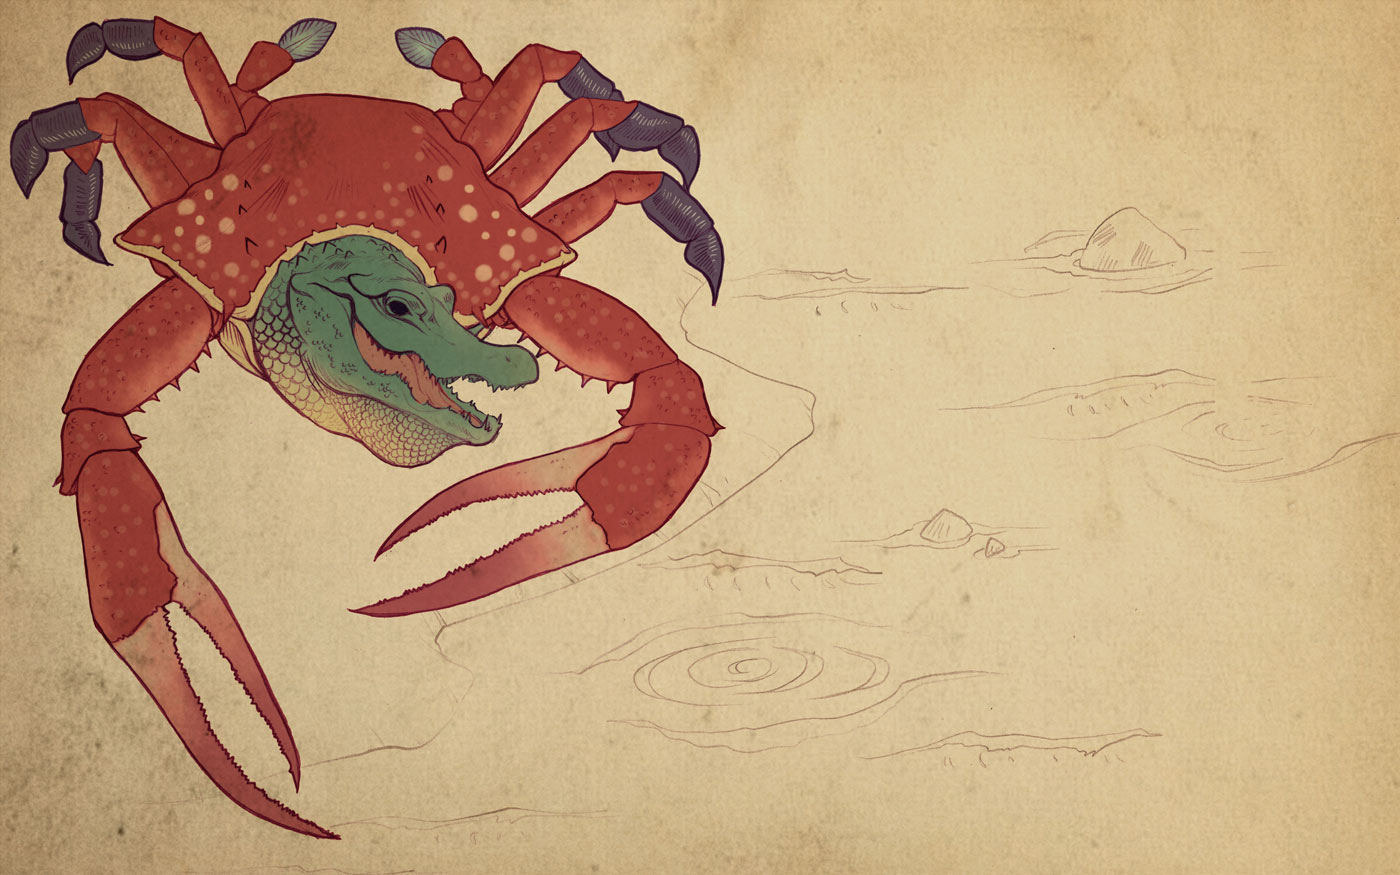 japanese art alligator crab mashup wanikani